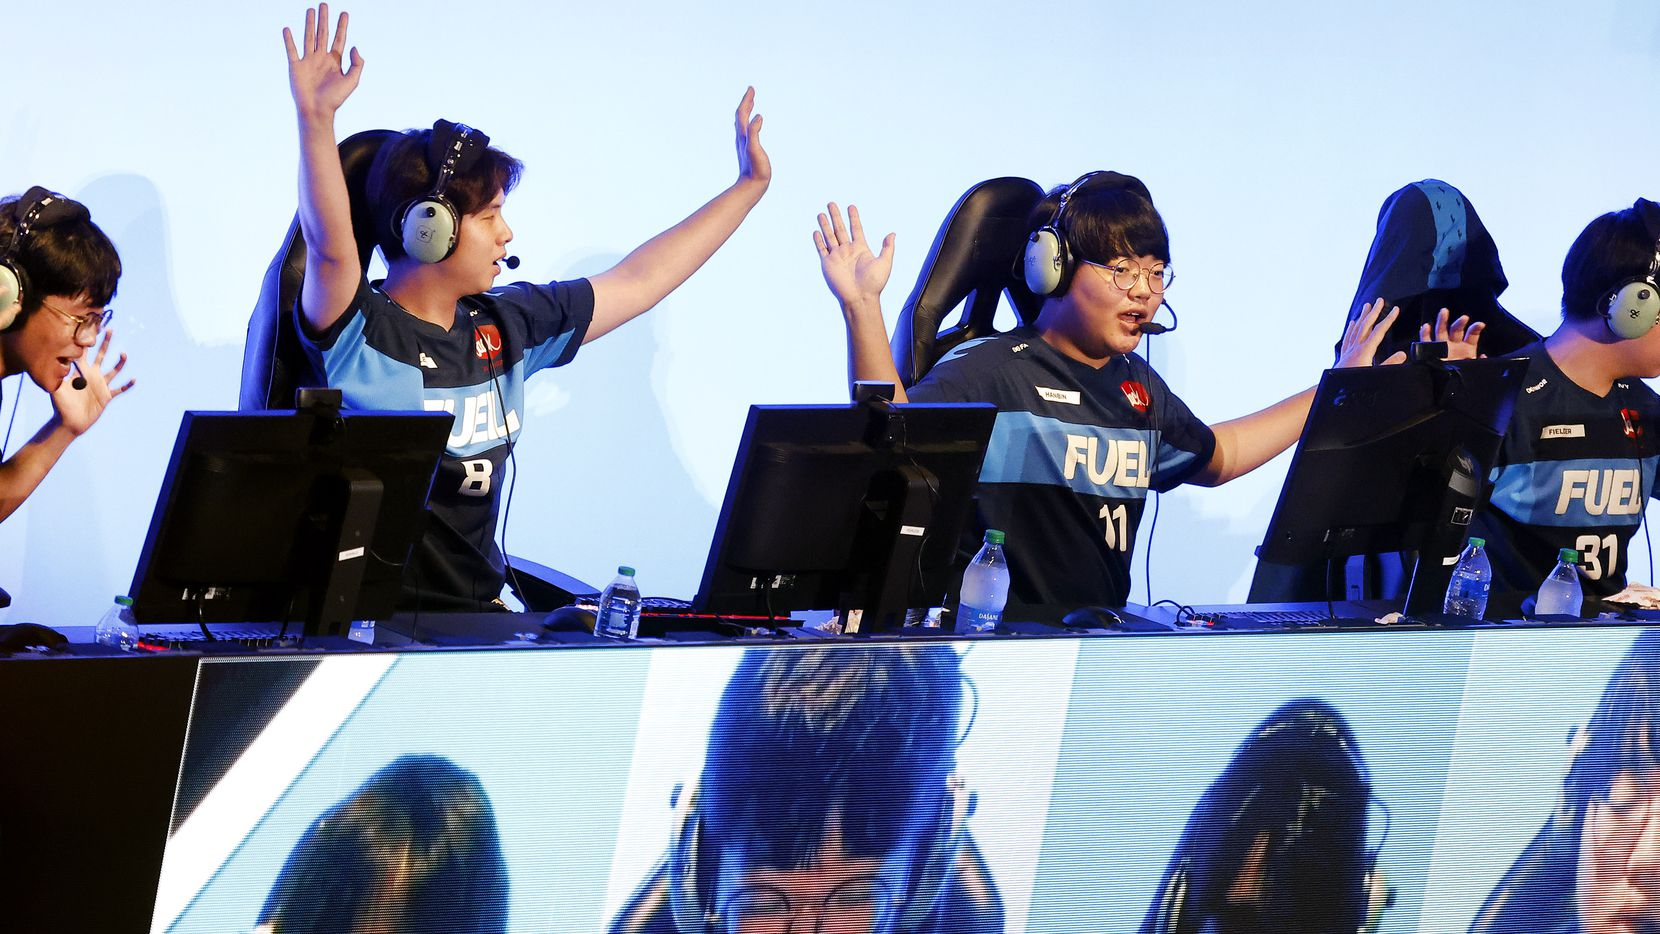 """Dallas Fuel team members (from left) Kim 'Sp9rk1e' Yeonghan, Lee """"Fearless"""" Eui-Seok, Choi 'Hanbin' Hanbeen and Kwon 'Fielder' Jun celebrate their Overwatch League win over the Houston Outlaws at Esports Stadium Arlington Friday, July 9, 2021. Dallas Fuel defeated Houston in The Battle for Texas, 3-0. It was the first in-person live competition for fans in over a year. Houston competed from their hometown. (Tom Fox/The Dallas Morning News)"""